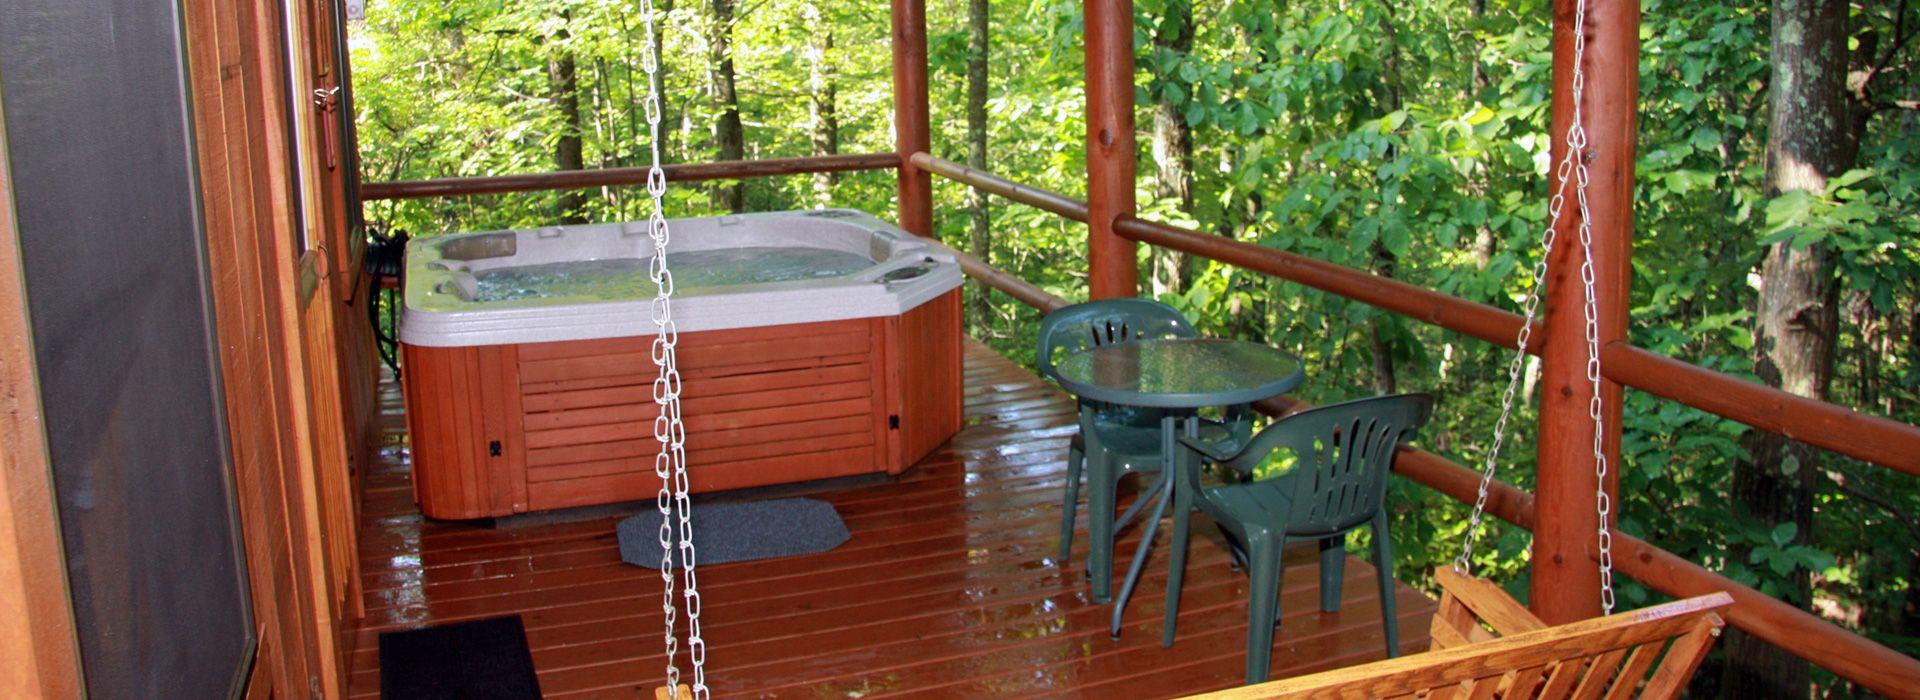 Spa Packages Hocking Hills Cabins